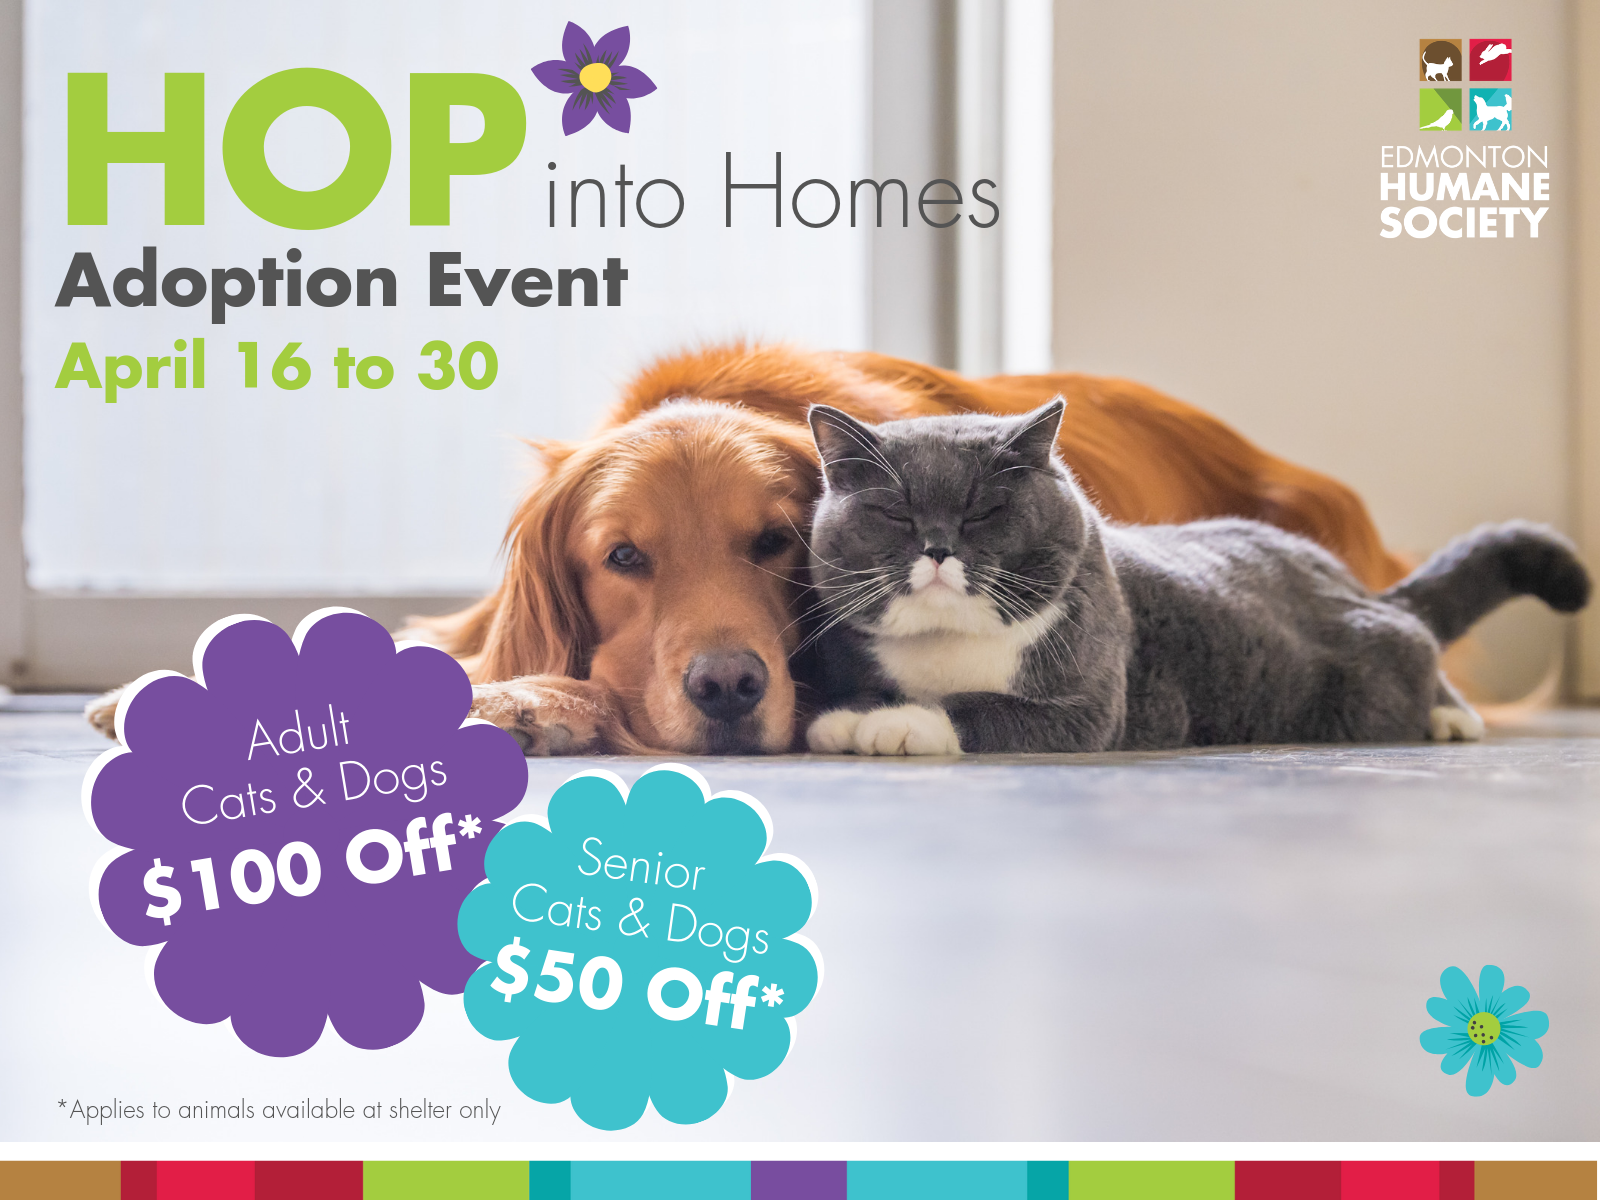 HOP INTO HOMES ADOPTION EVENT - Edmonton Humane Society